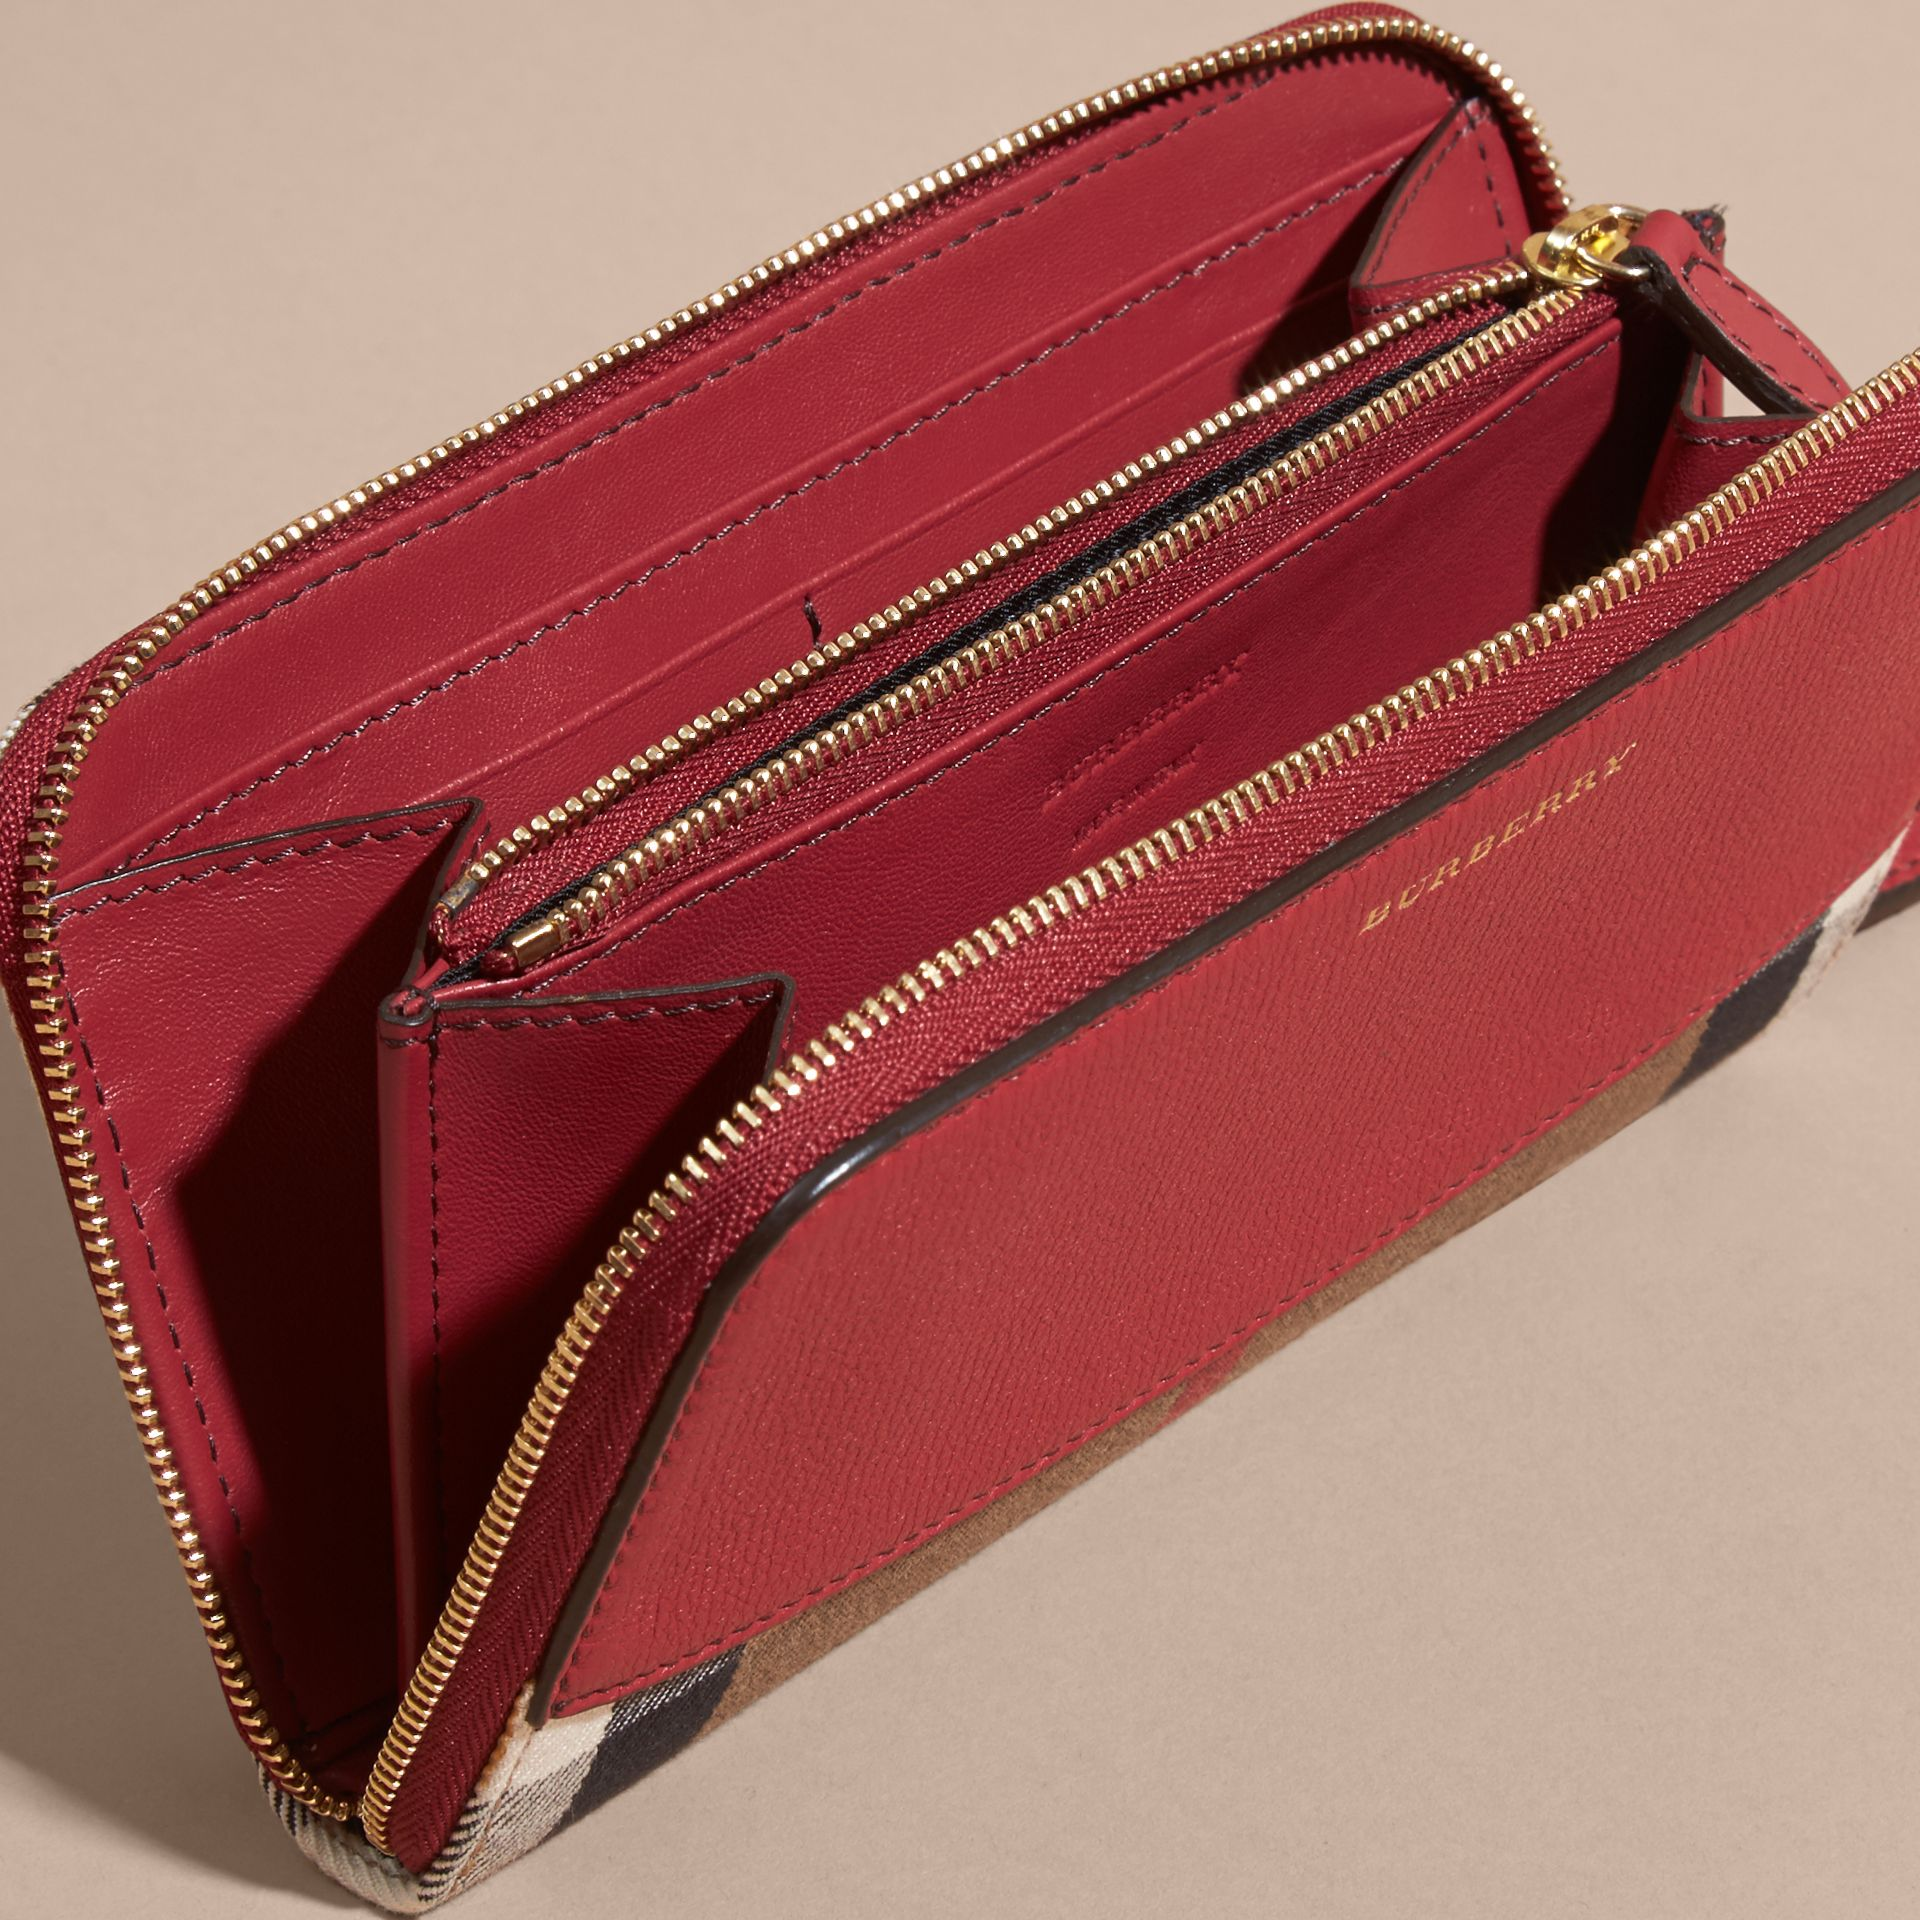 House Check and Leather Ziparound Wallet in Military Red - Women | Burberry Canada - gallery image 5